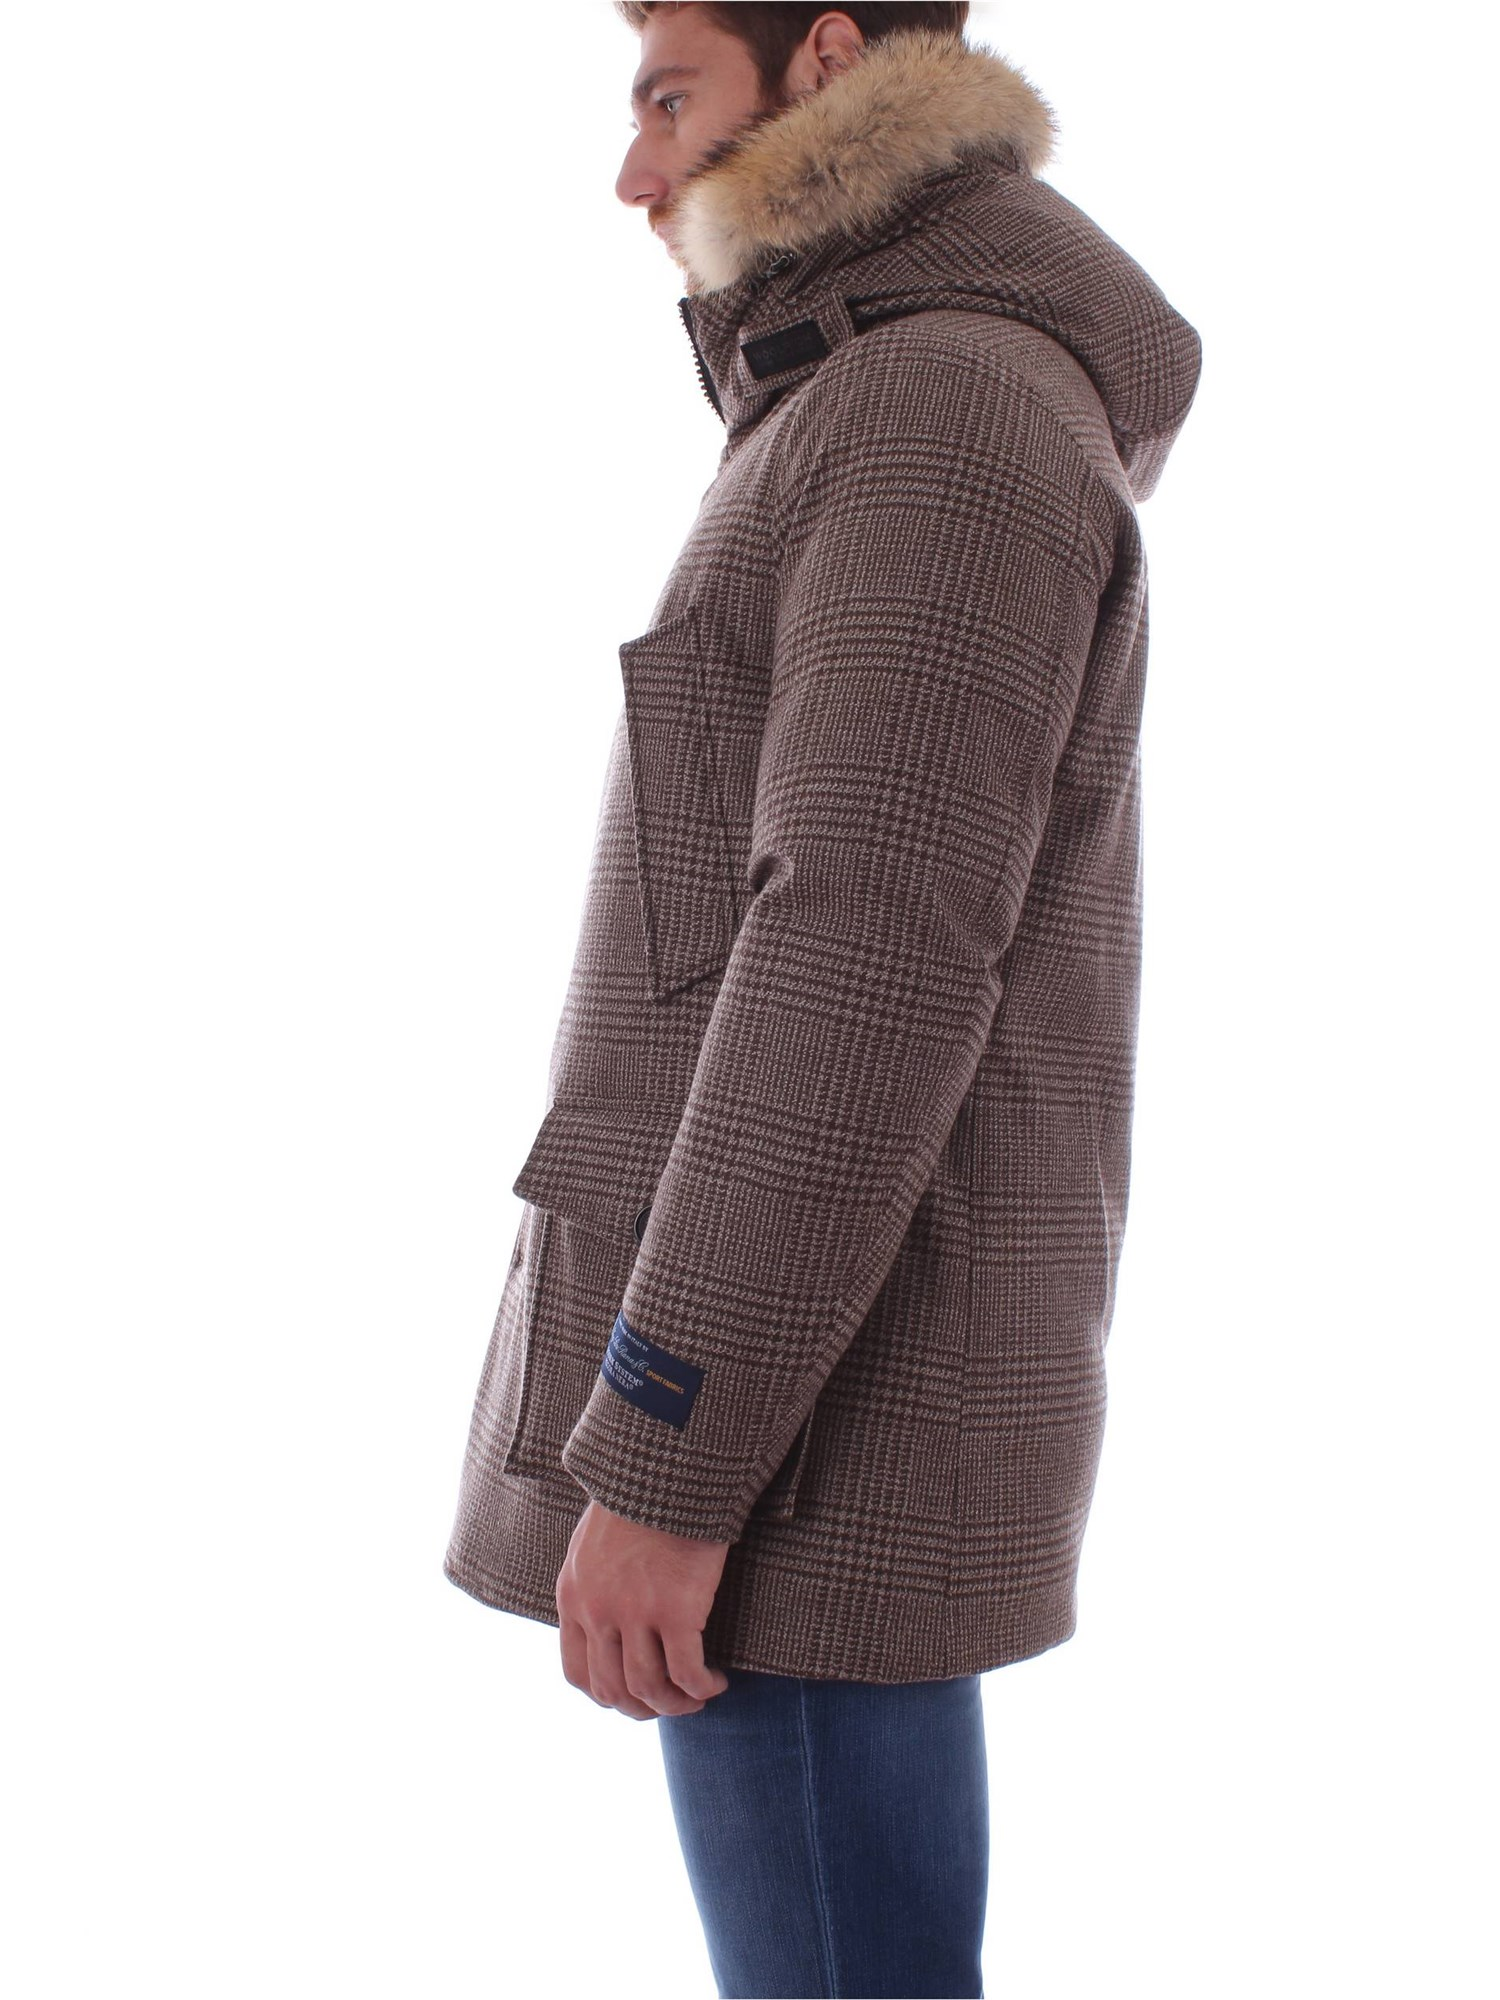 4958 Prince Of hiver Parka Automne Woolrich Homme Wales Wocps2716 5wEq8EnI1